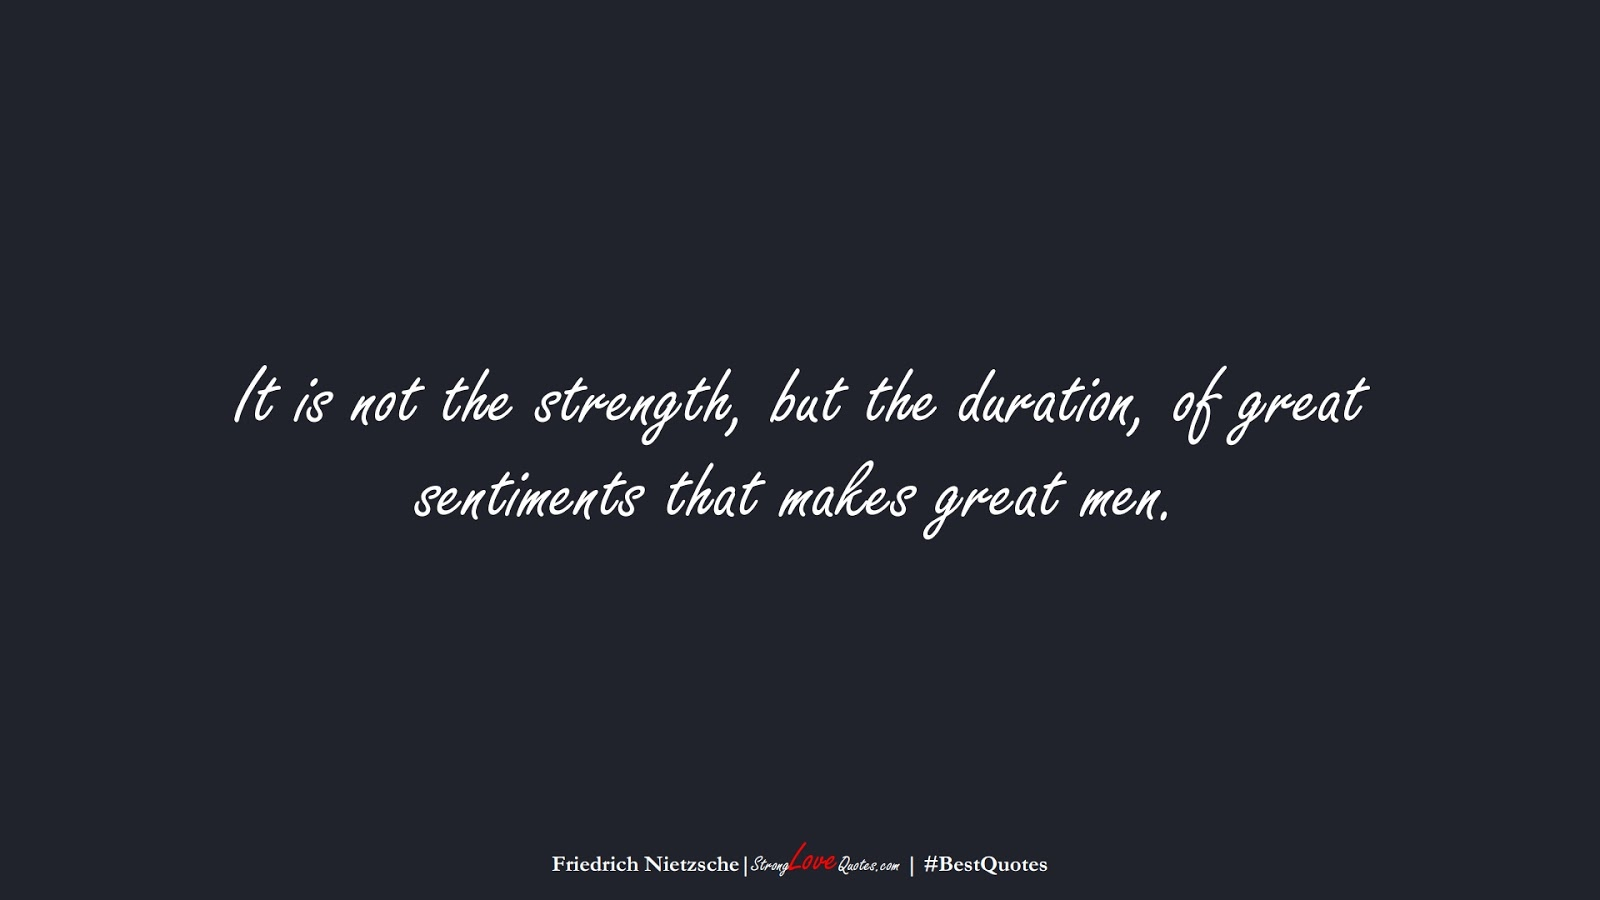 It is not the strength, but the duration, of great sentiments that makes great men. (Friedrich Nietzsche);  #BestQuotes